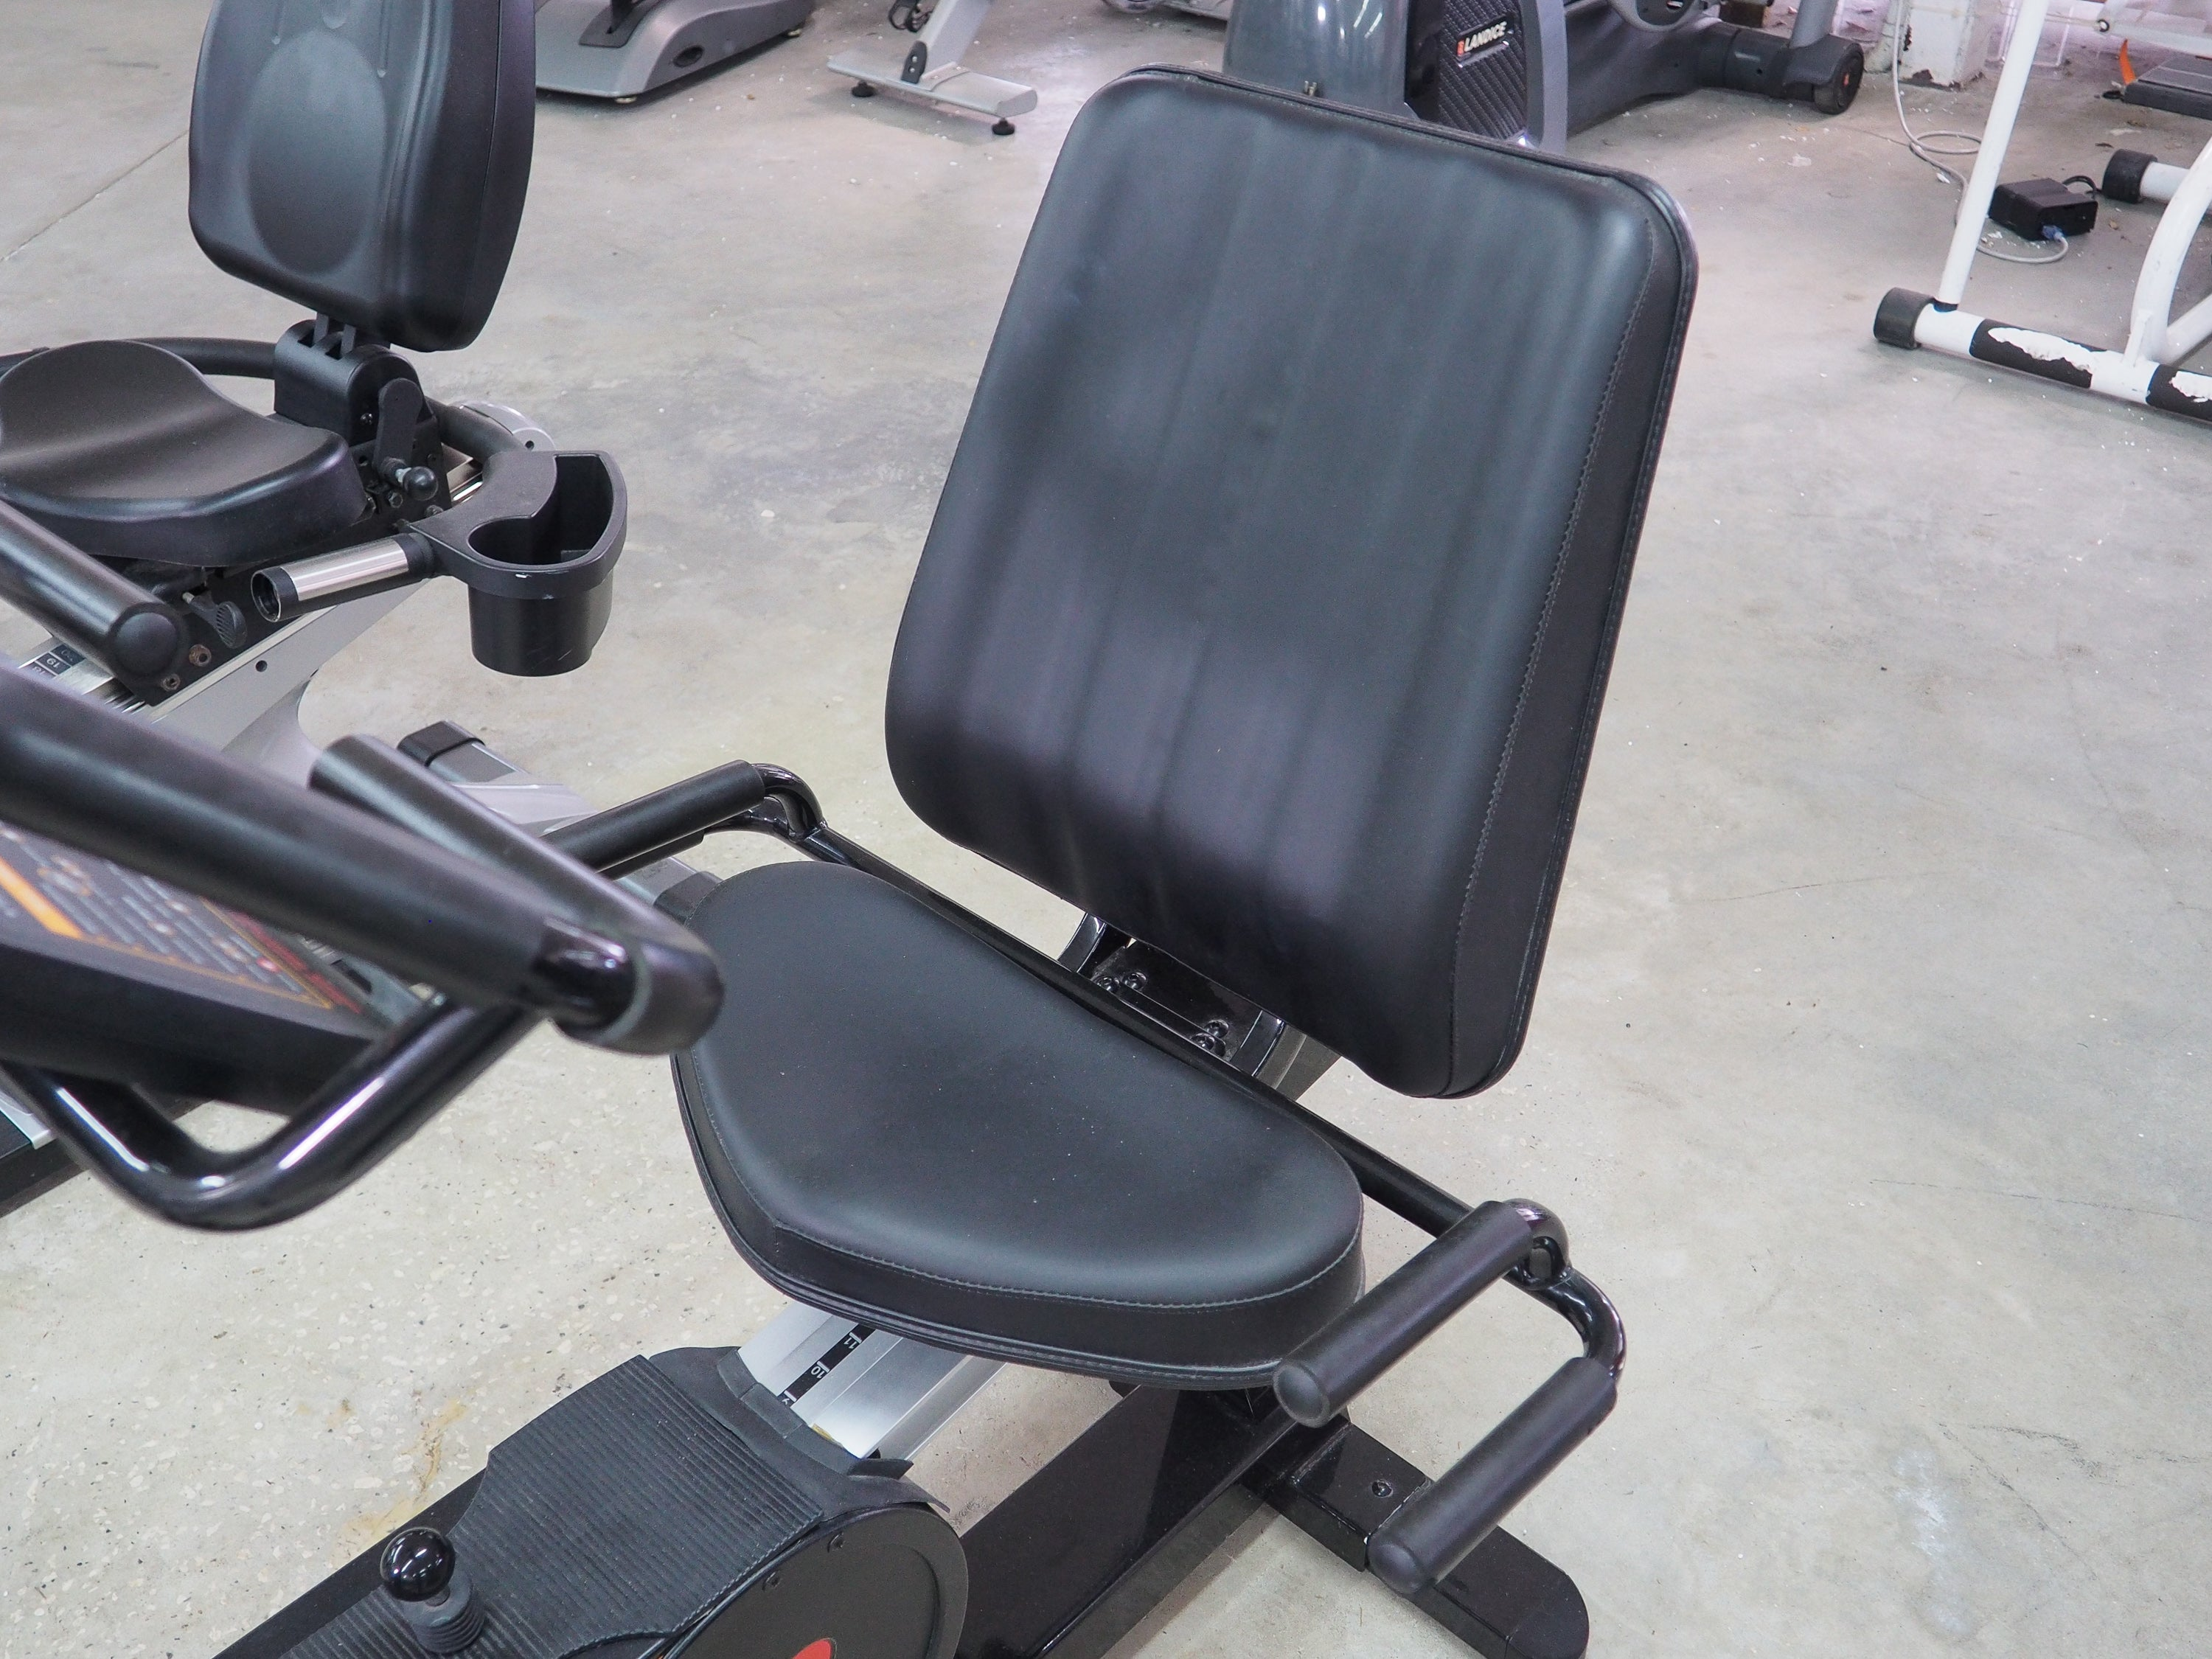 DiamondBack 2100R Recumbent Bike